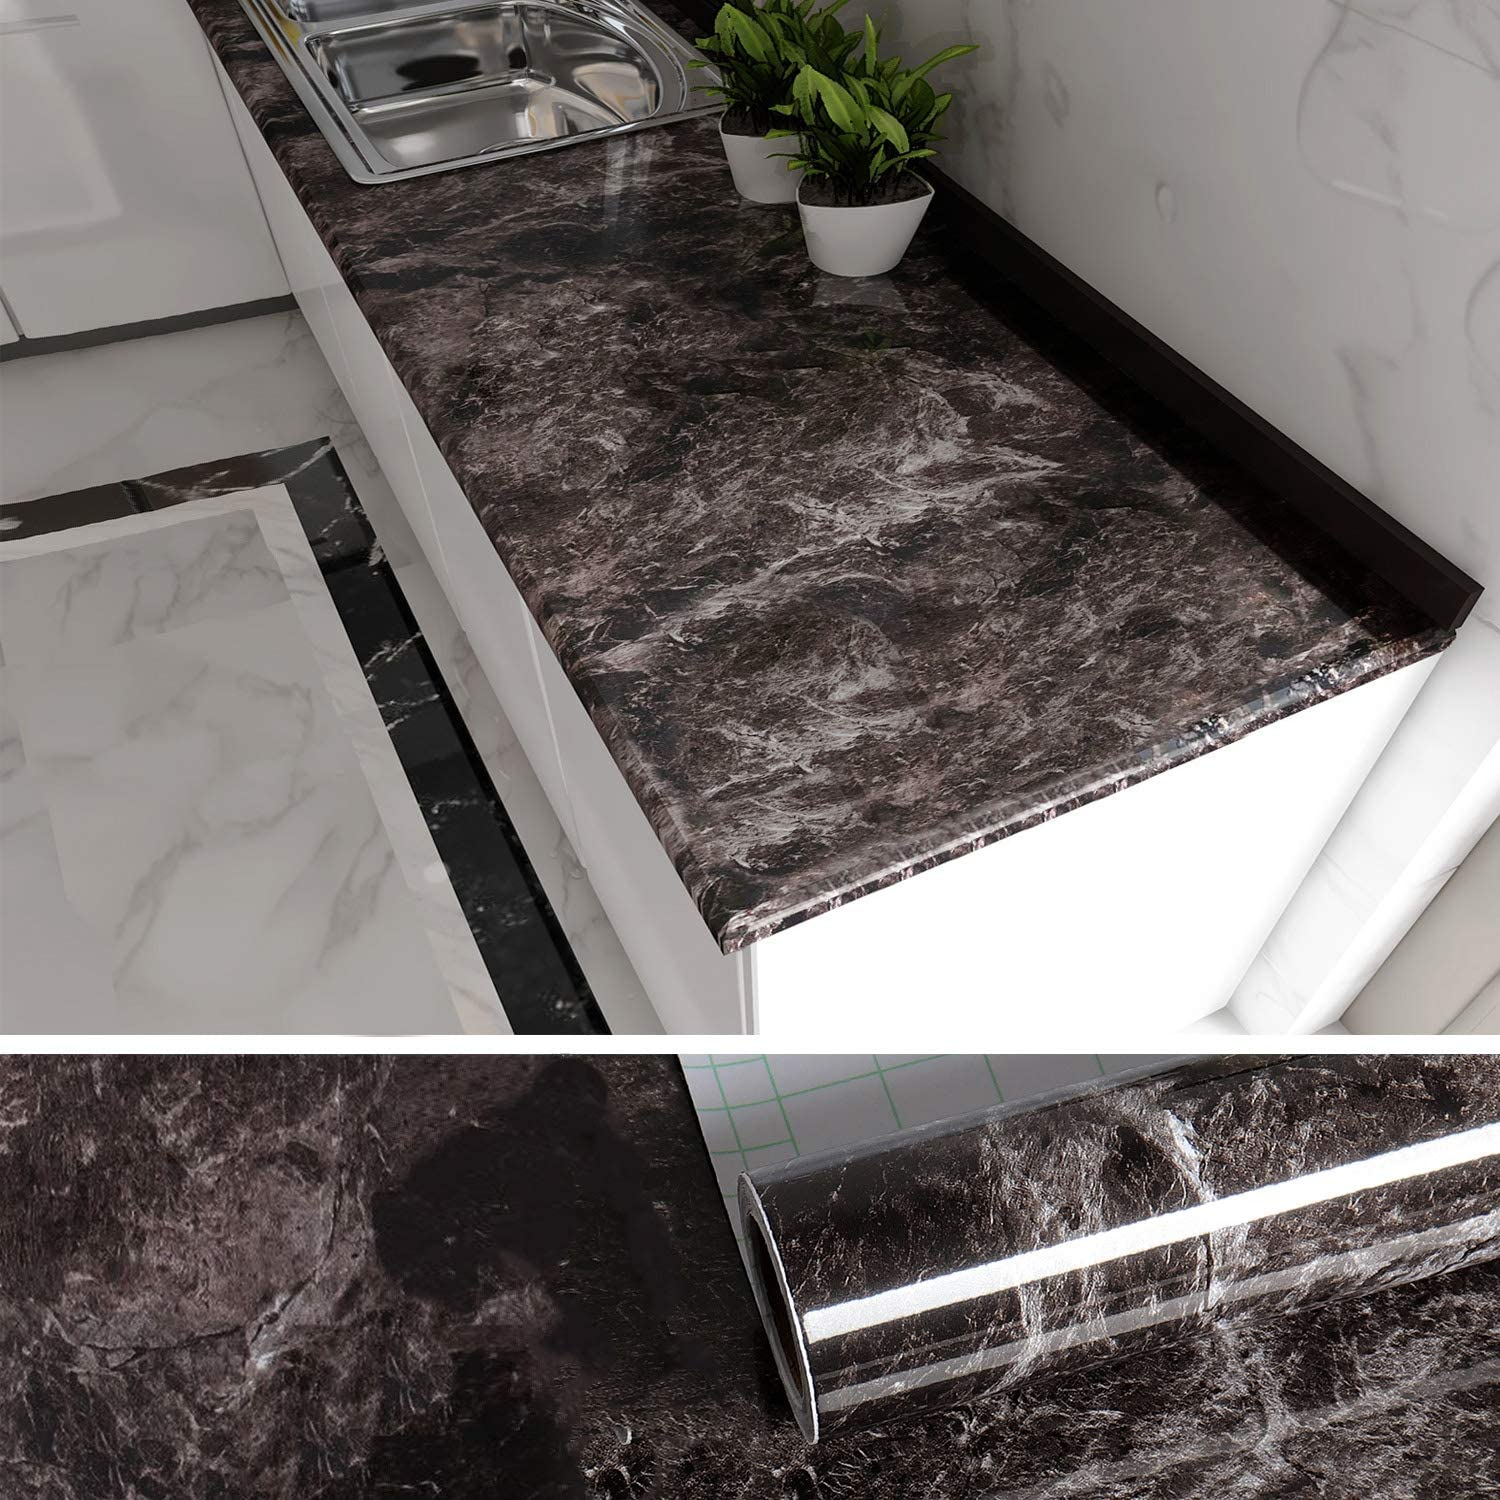 Amazon Com Veelike Black Marble Contact Paper For Countertops Brwon Peel And Stick Countertops For Kitchen Cabinets Removable Wallpaper Counter Top Covers Peel And Stick Wall Paper For Home Decor 354 X15 7 Home Improvement